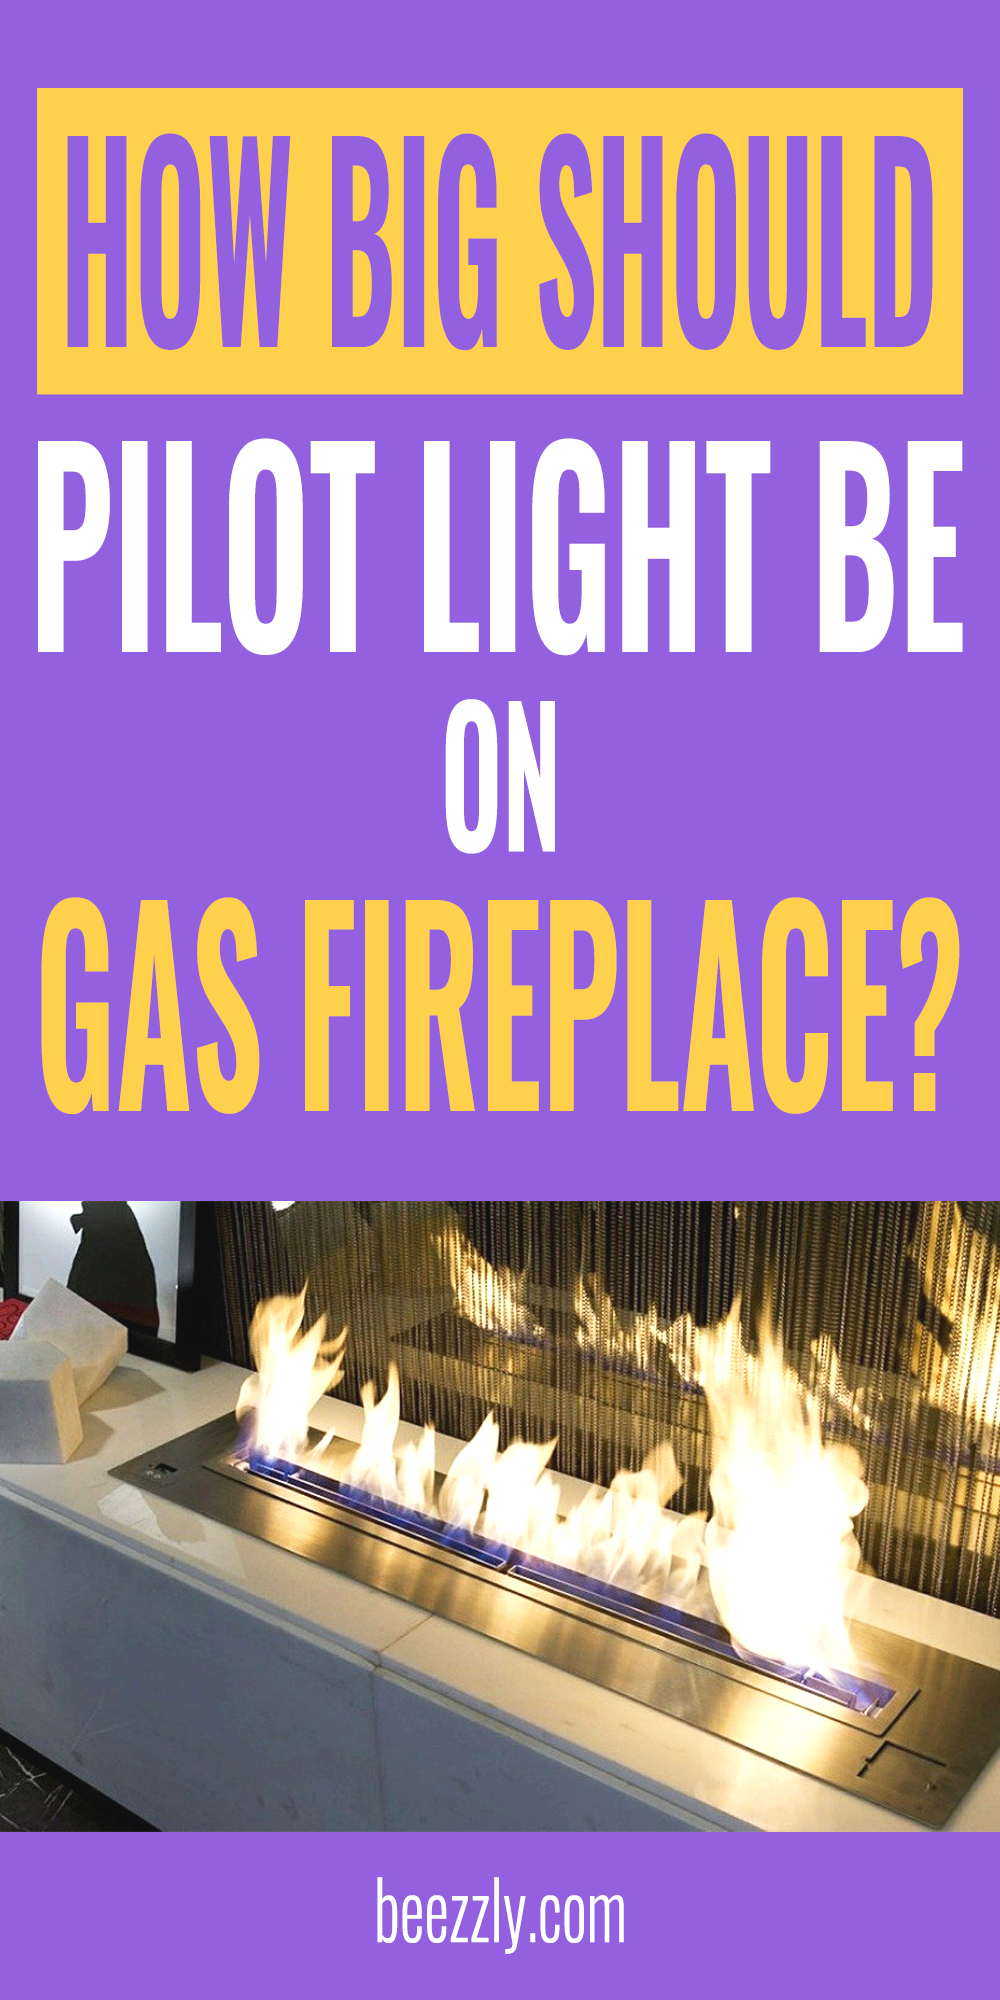 How Big Should Pilot Light Be On Gas Fireplace Gas Fireplace Diy Household Tips Traditional Fireplace